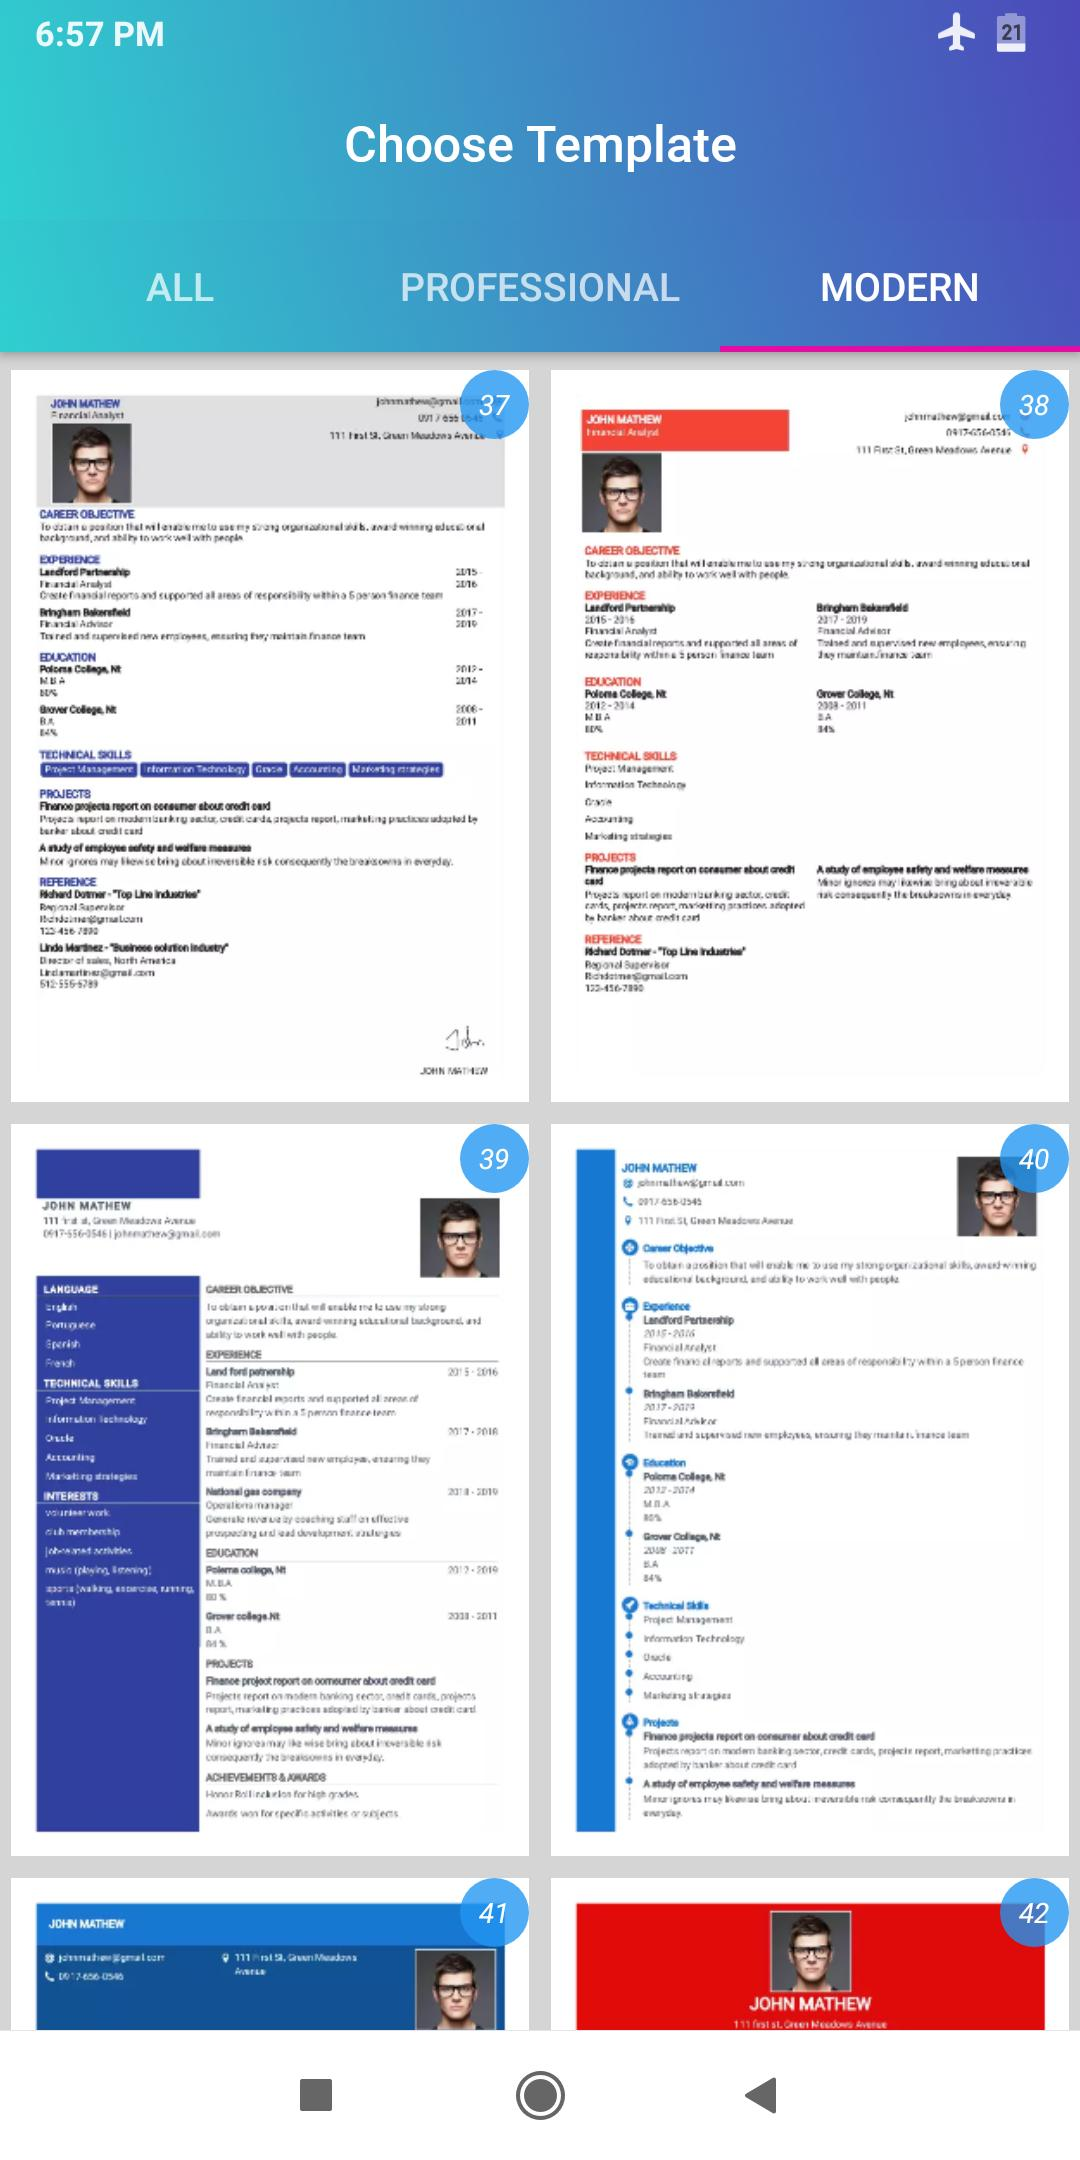 screen-8.jpg?fakeurl=1&type= Online Job Application Website Template on for retail, free printable hair salon, spanish english, editable fillable, word doc, word document, free sample, for recovery business,